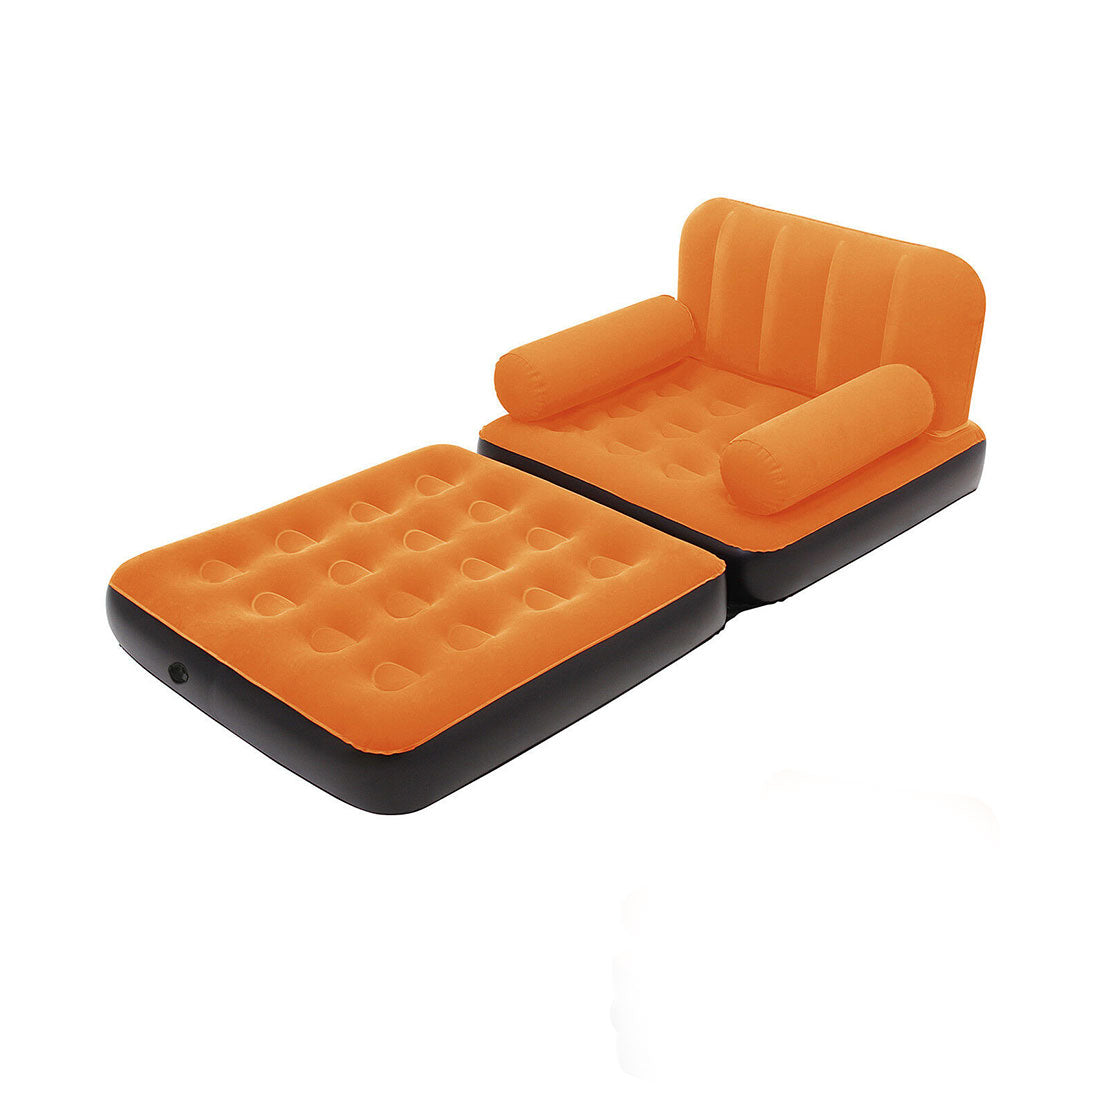 Bestway Inflatable 2 in 1 Couch Chair Air Bed Single - orange